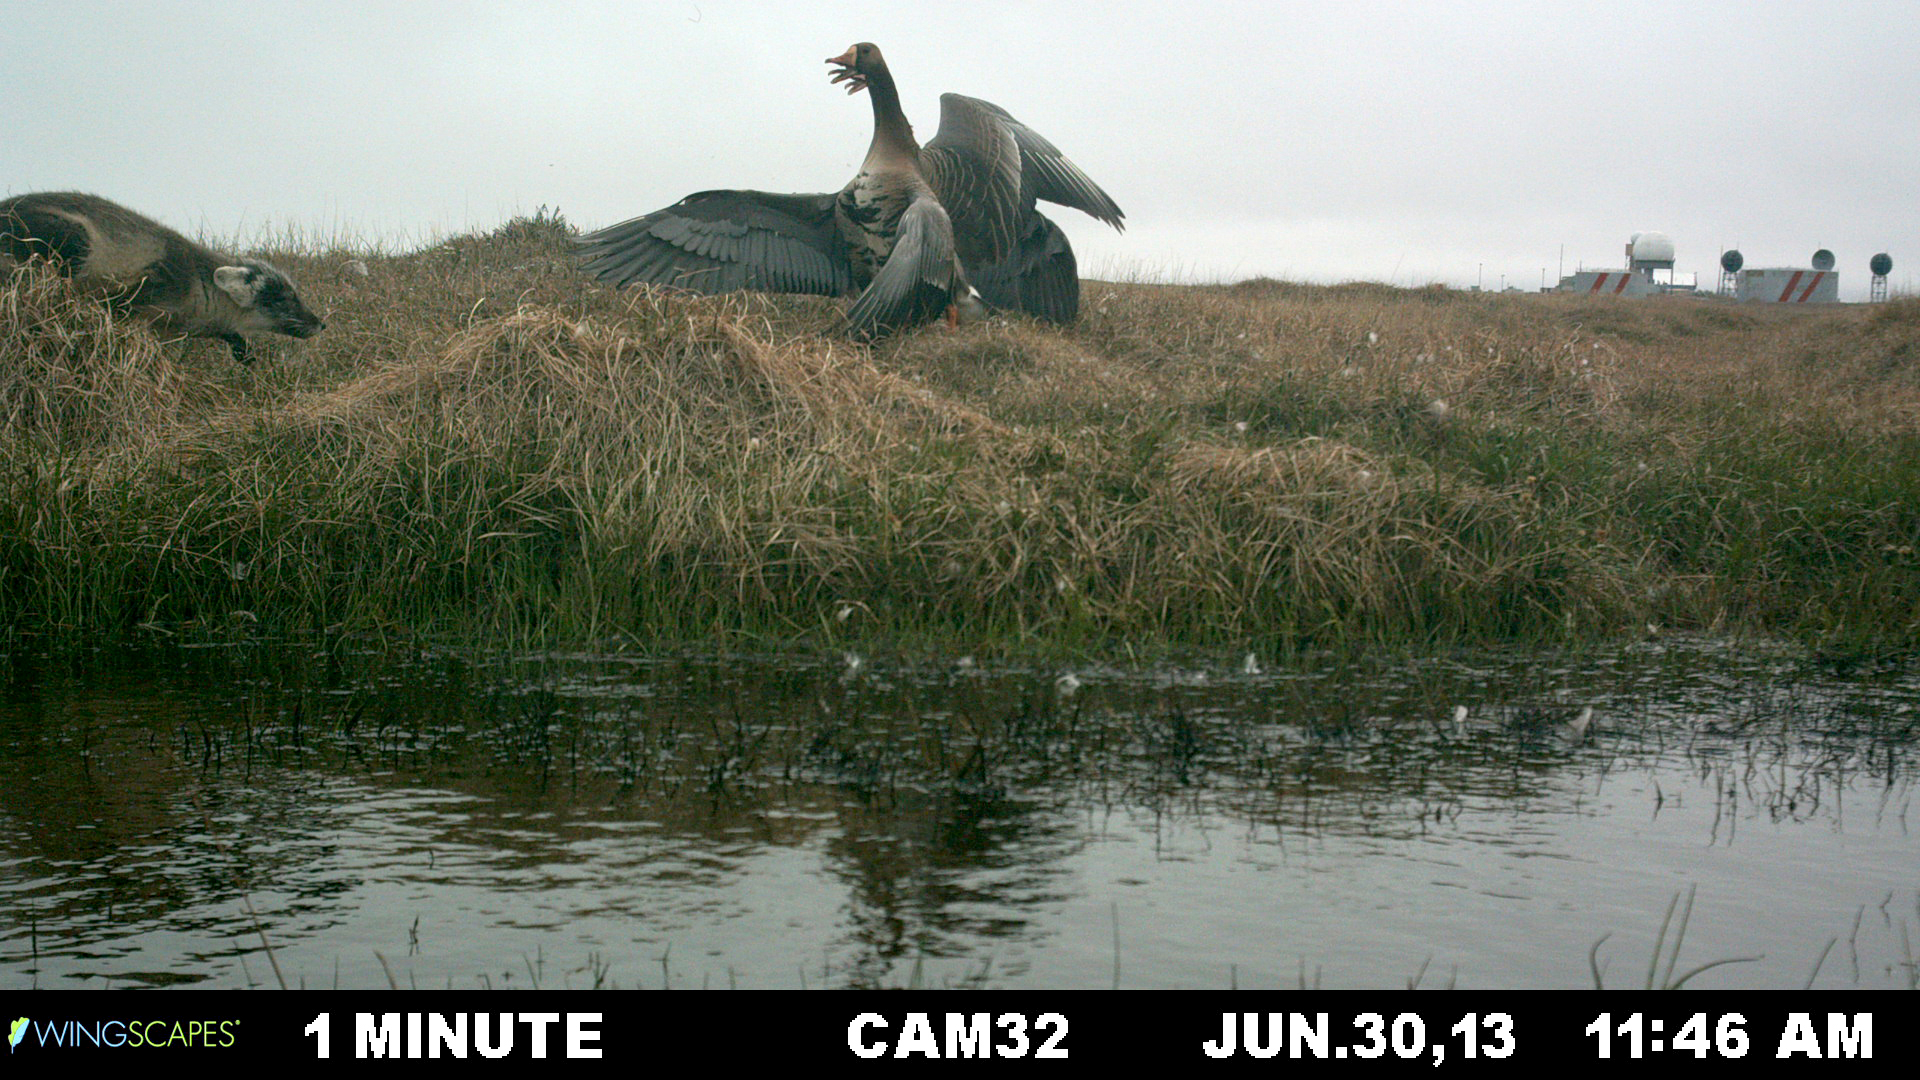 Geese at Lonely Point/Camp Lonely were documented automatically by installed cameras over 2013-14. Their nesting behaviors and interactions with other animals were captured. This fox received a big defensive reaction. (Brandt Meixell / USGS)